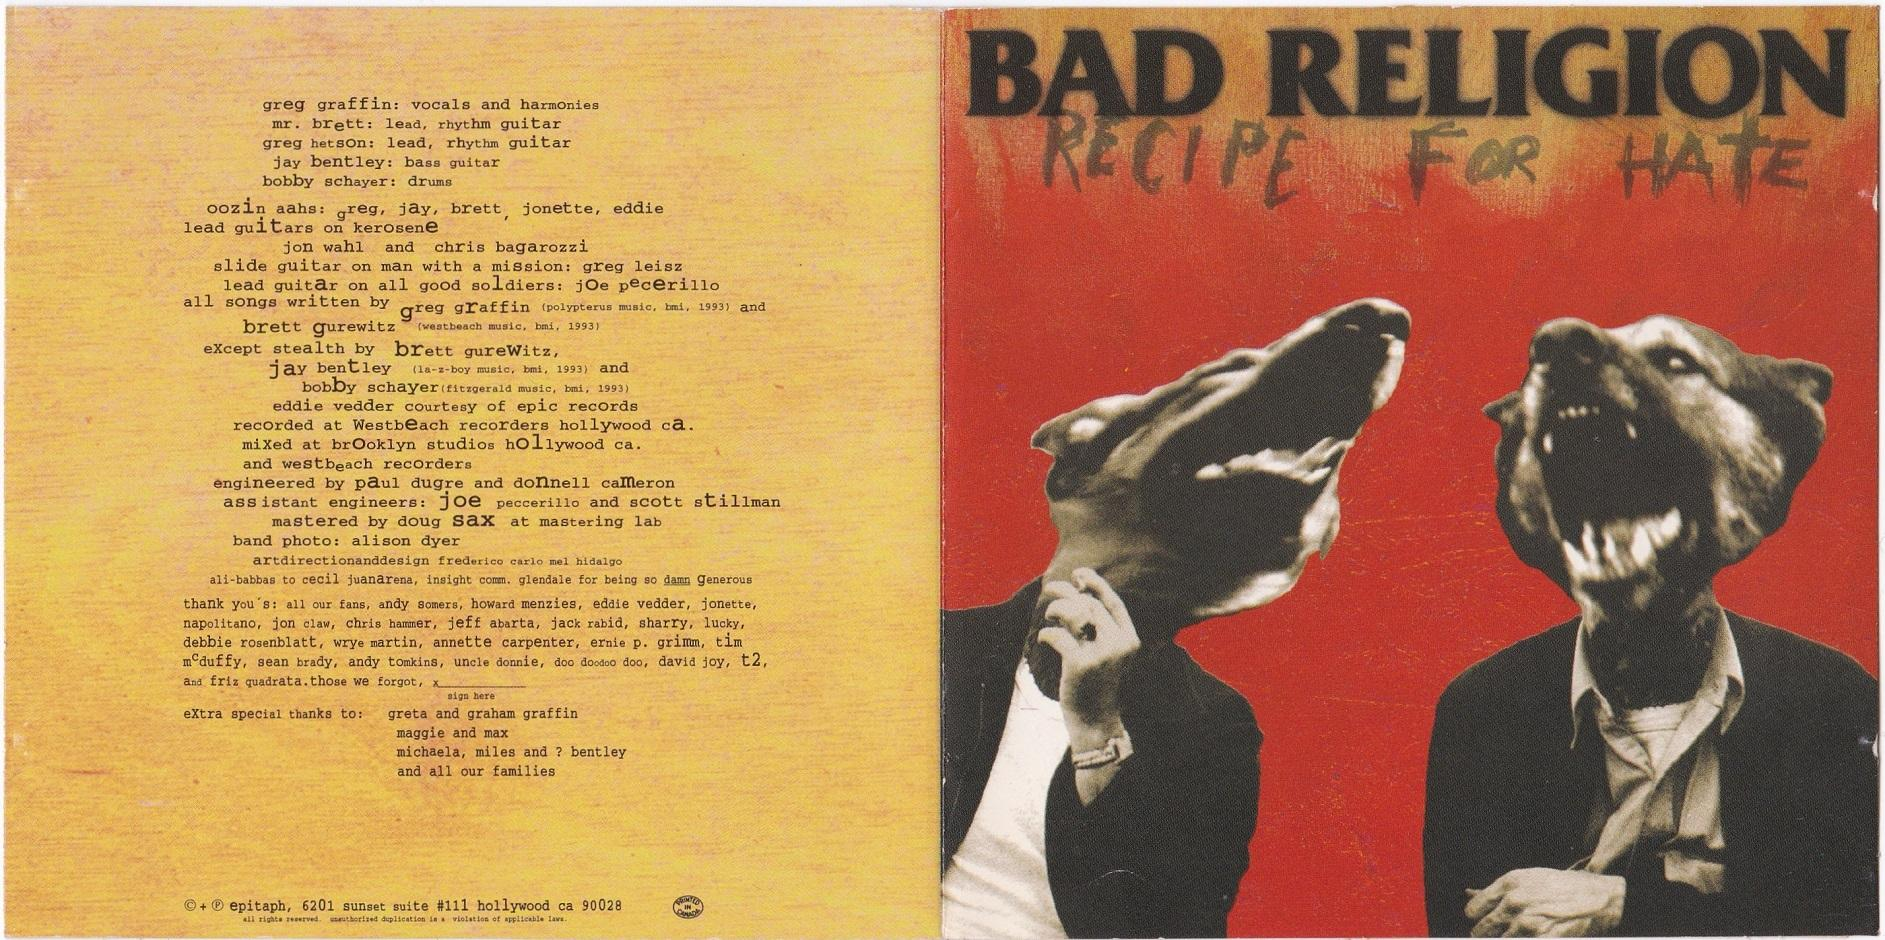 Bad Religion - Recipe For Hate | Epitaph Records